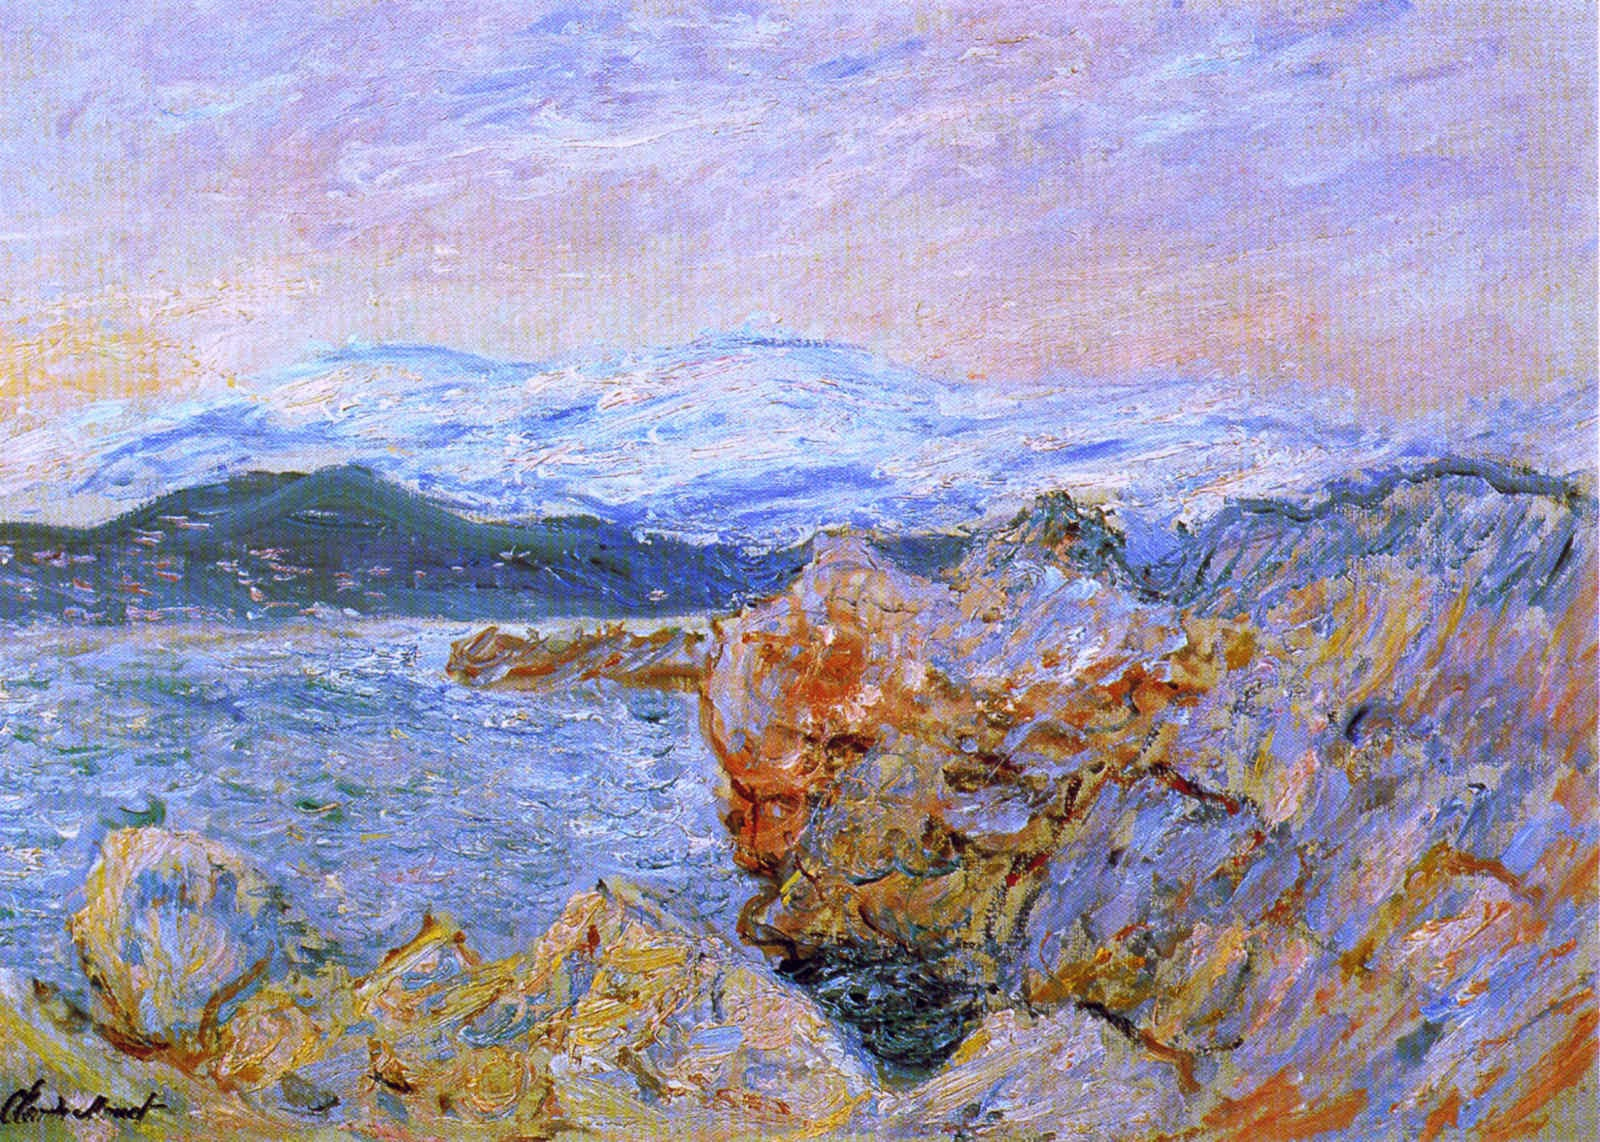 art artists claude monet part 18 1888 1889 claude monet 1888 the gulf juan at antibes oil on canvas 63 5 x 91 cm private collection